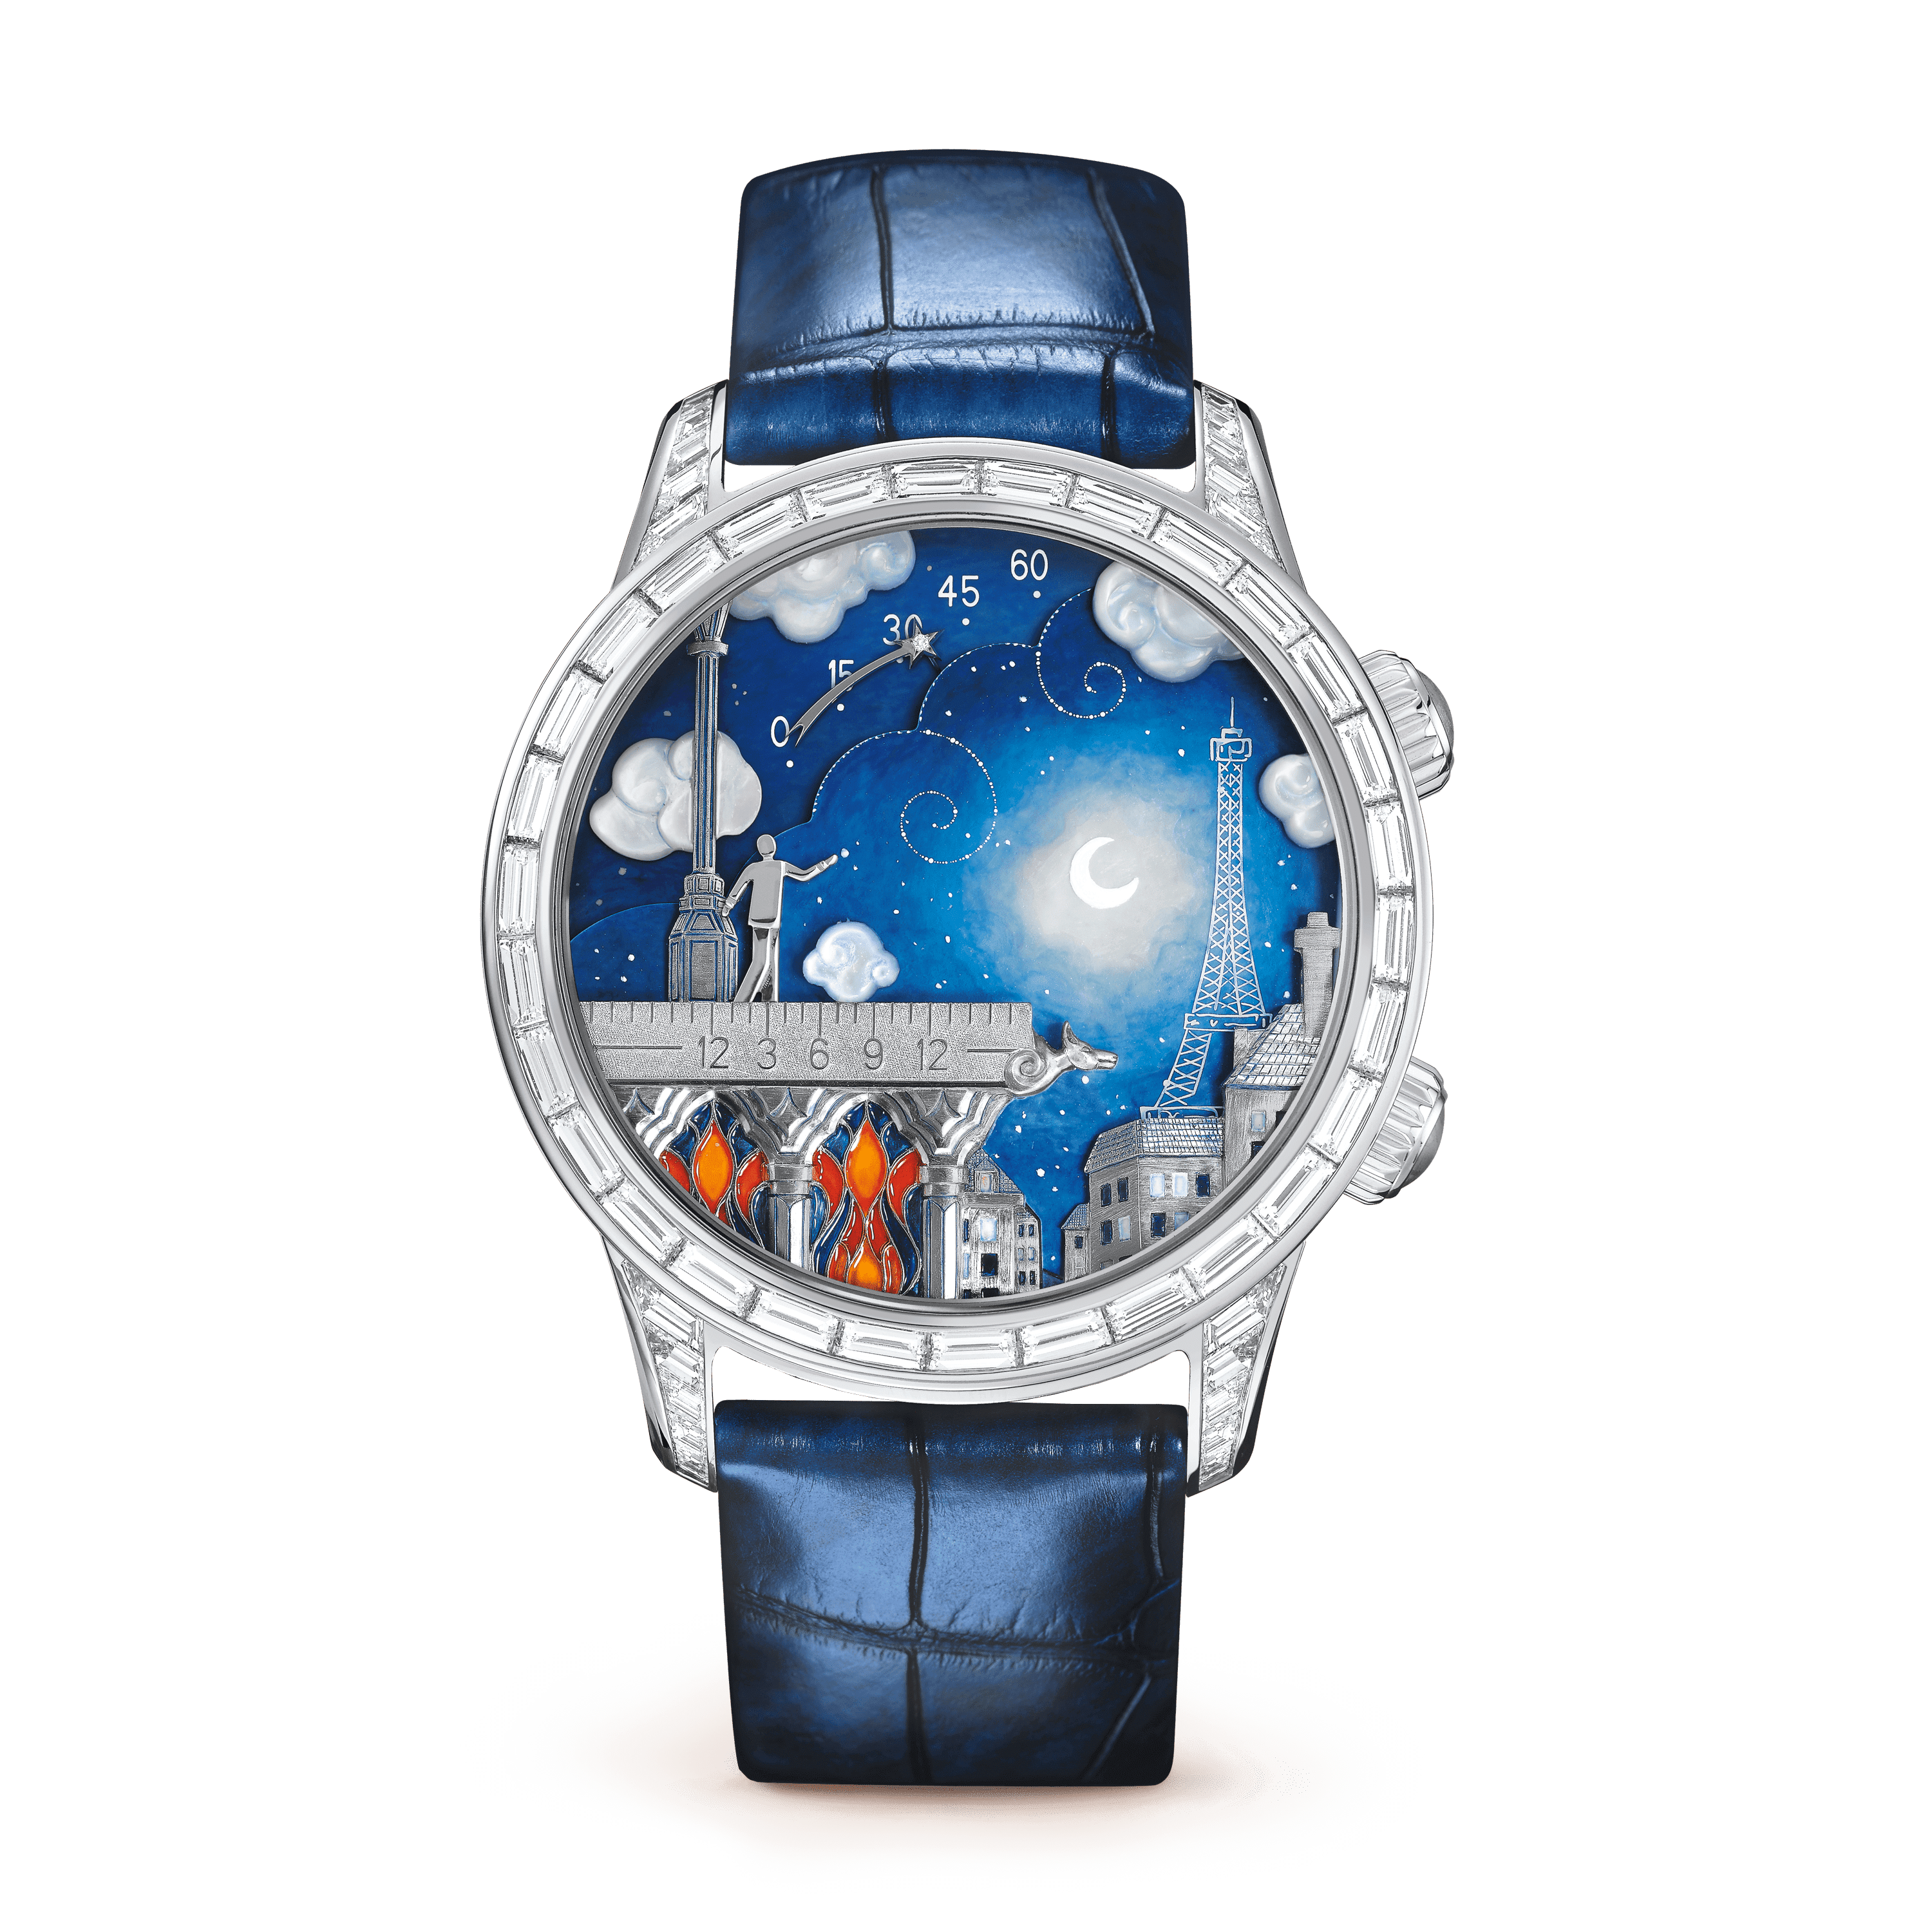 Montre Midnight Poetic Wish, - Front View - VCARO30N00 - Van Cleef & Arpels